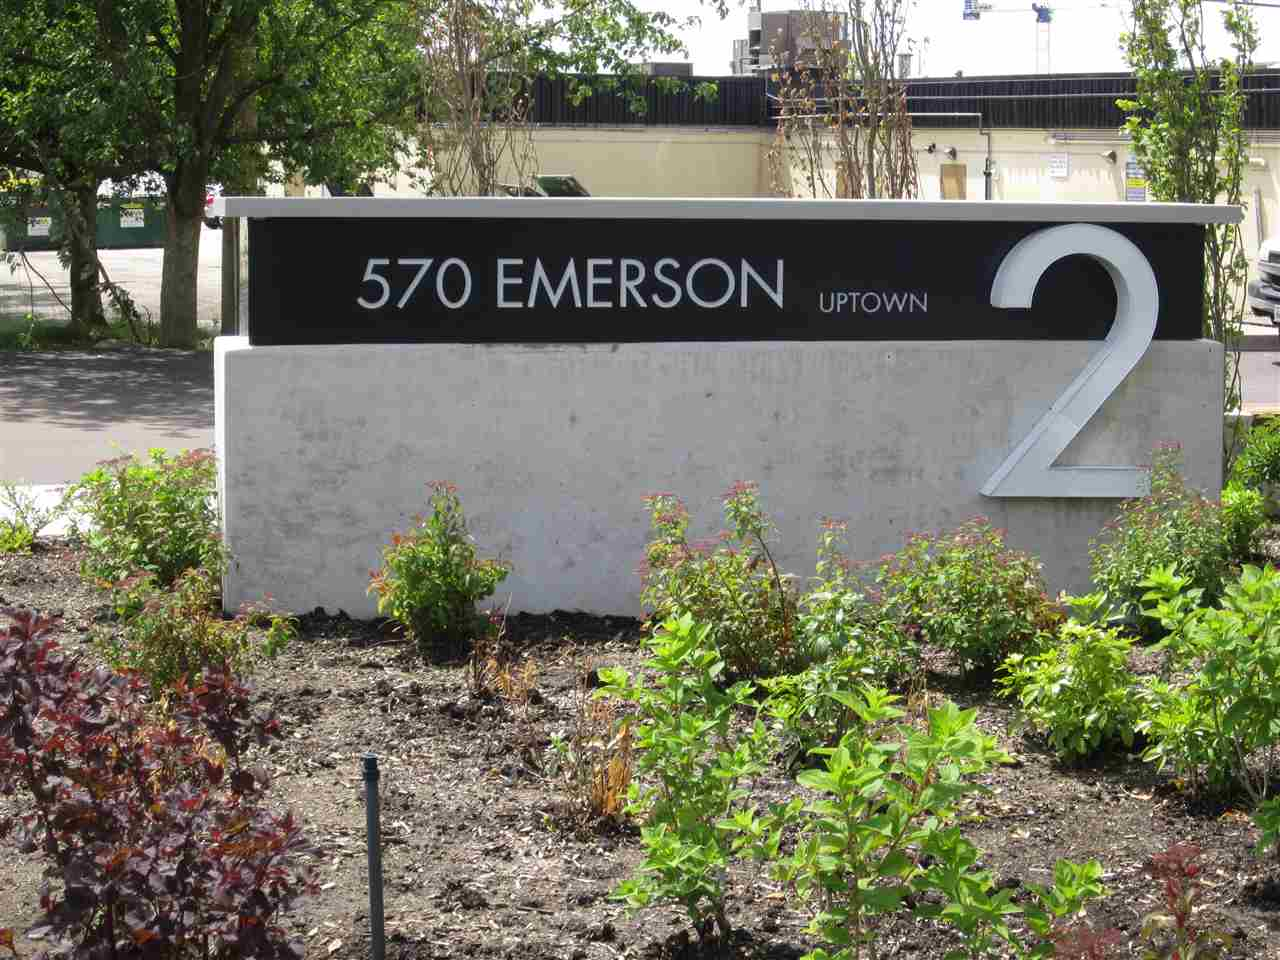 "Main Photo: 1602 570 EMERSON Street in Coquitlam: Coquitlam West Condo for sale in ""UPTOWN 2"" : MLS(r) # R2176494"